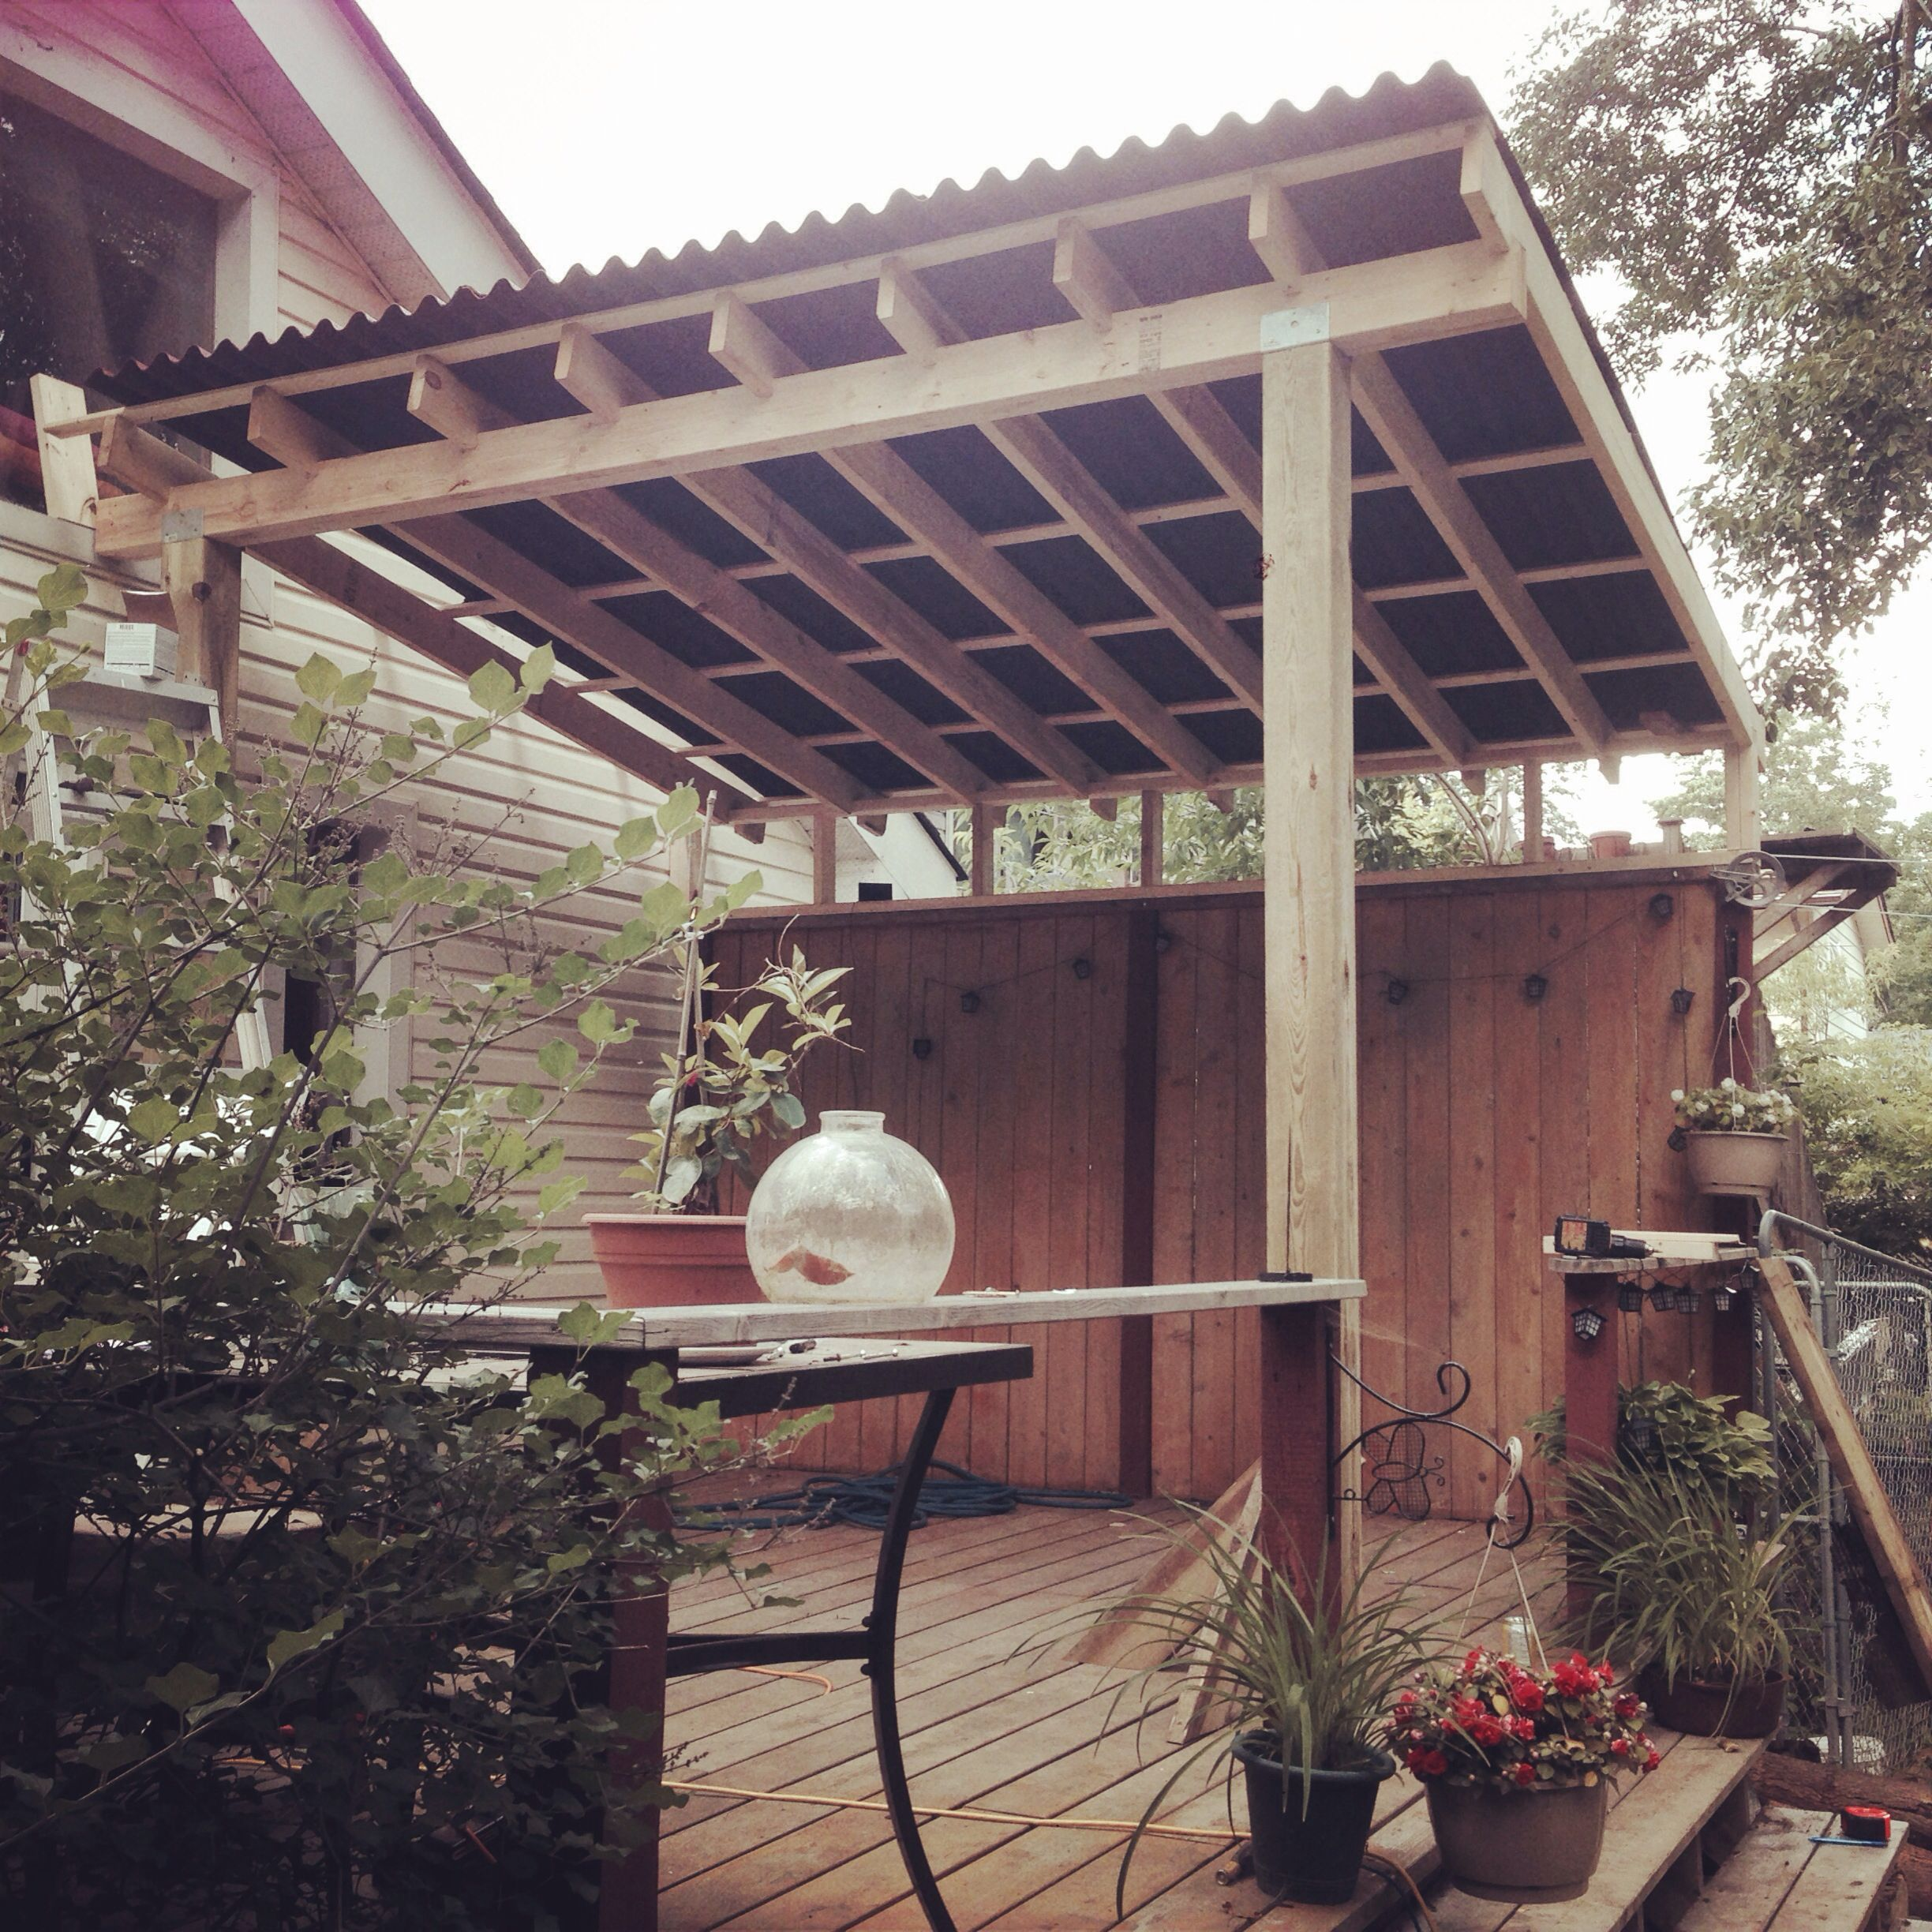 Find This Pin And More On OUTDOOR LIVING With ONDURA By Ondulineusa.